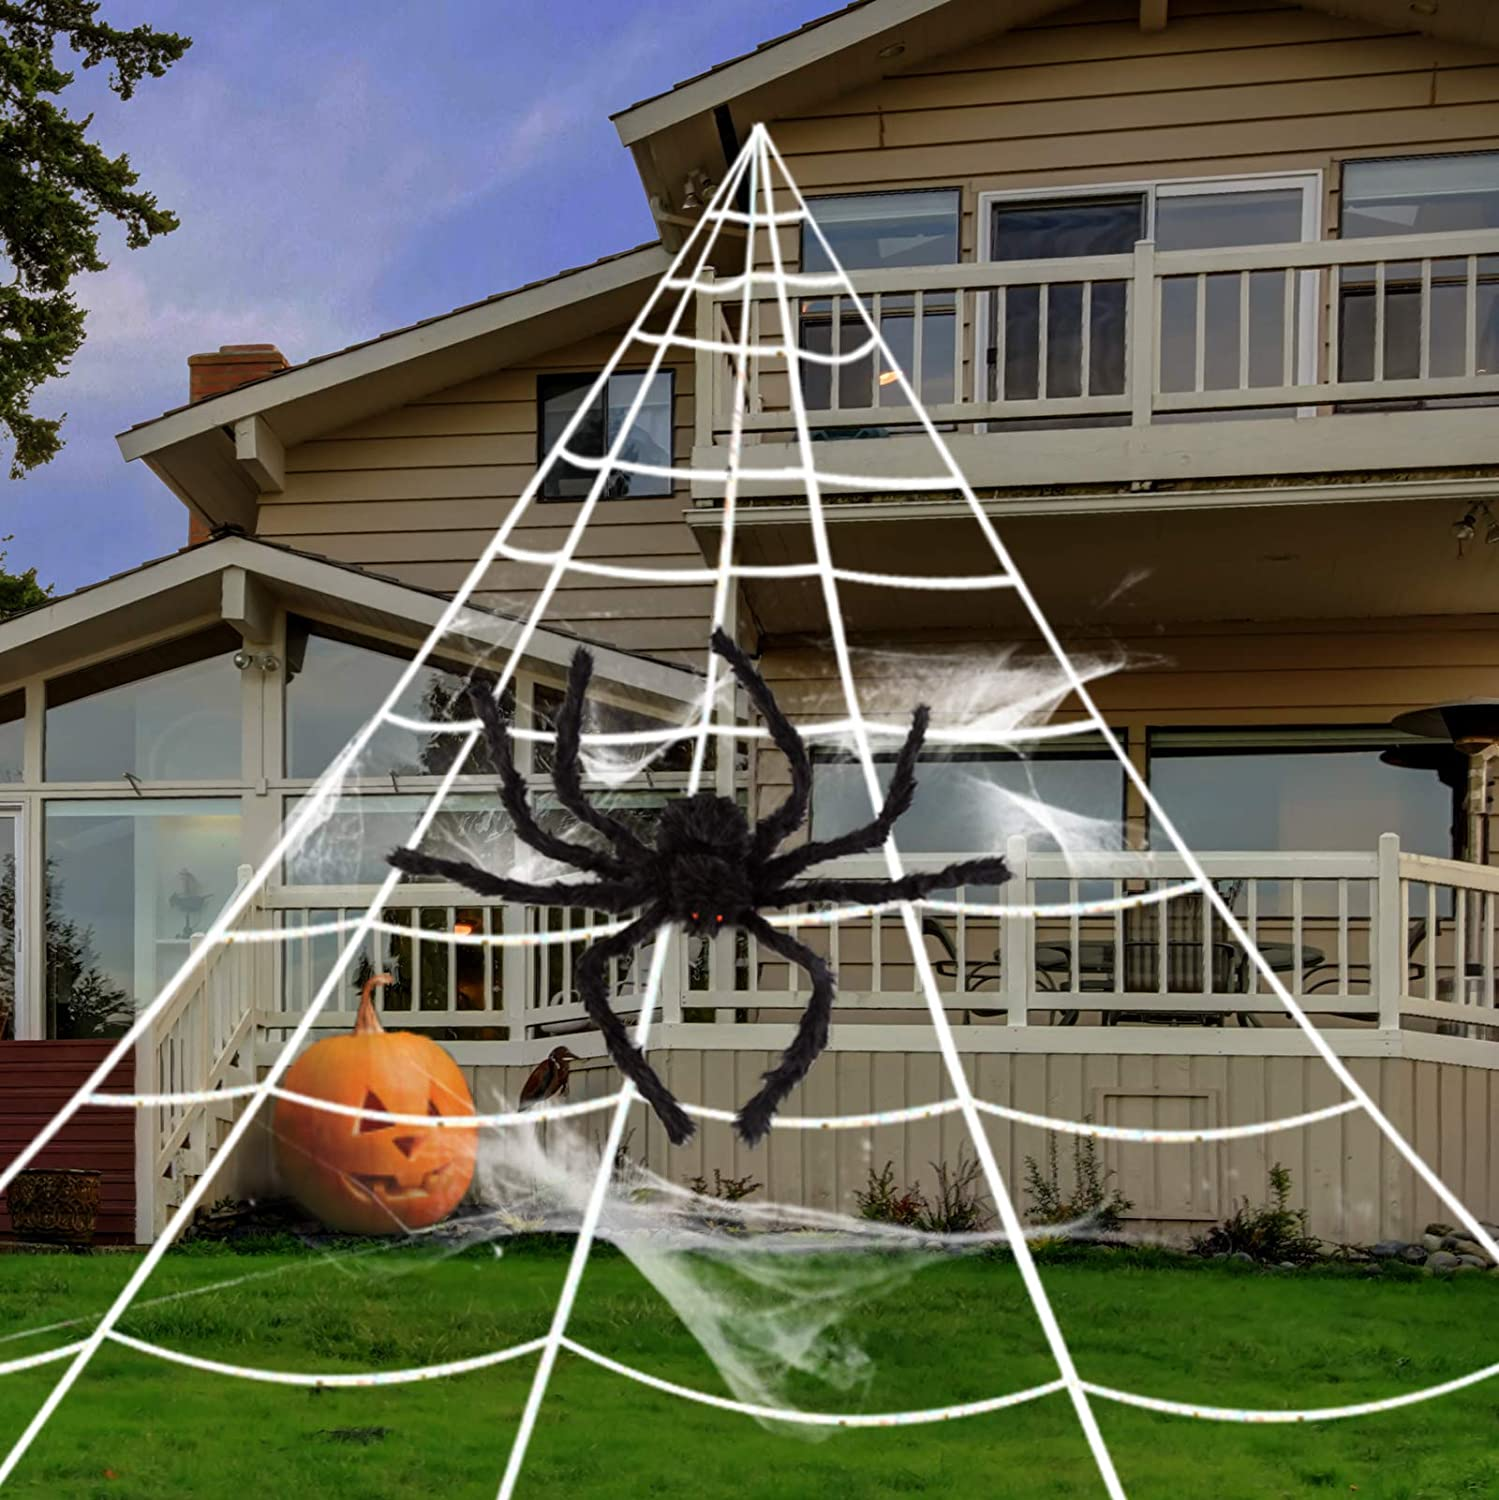 GIGALUMI Halloween spider web lace cloth 60g cobwebs 30 spiders horror halloween spider web decoration set for Halloween d/écor party carnival